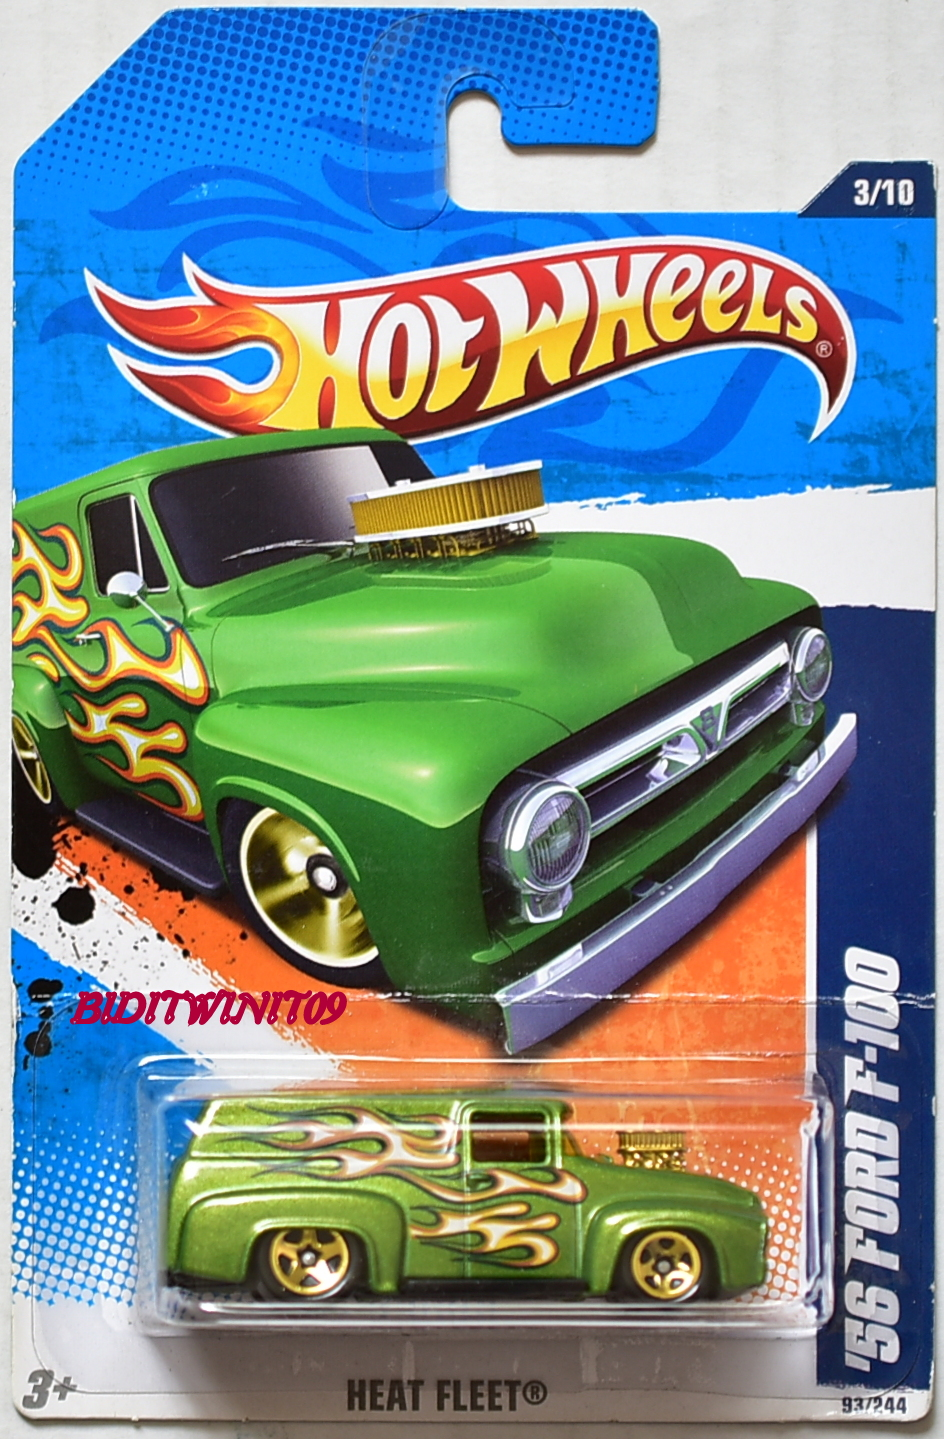 HOT WHEELS 2011 HEAT FLEET '56 FORD F-100 #3/10 GREEN - Click Image to Close